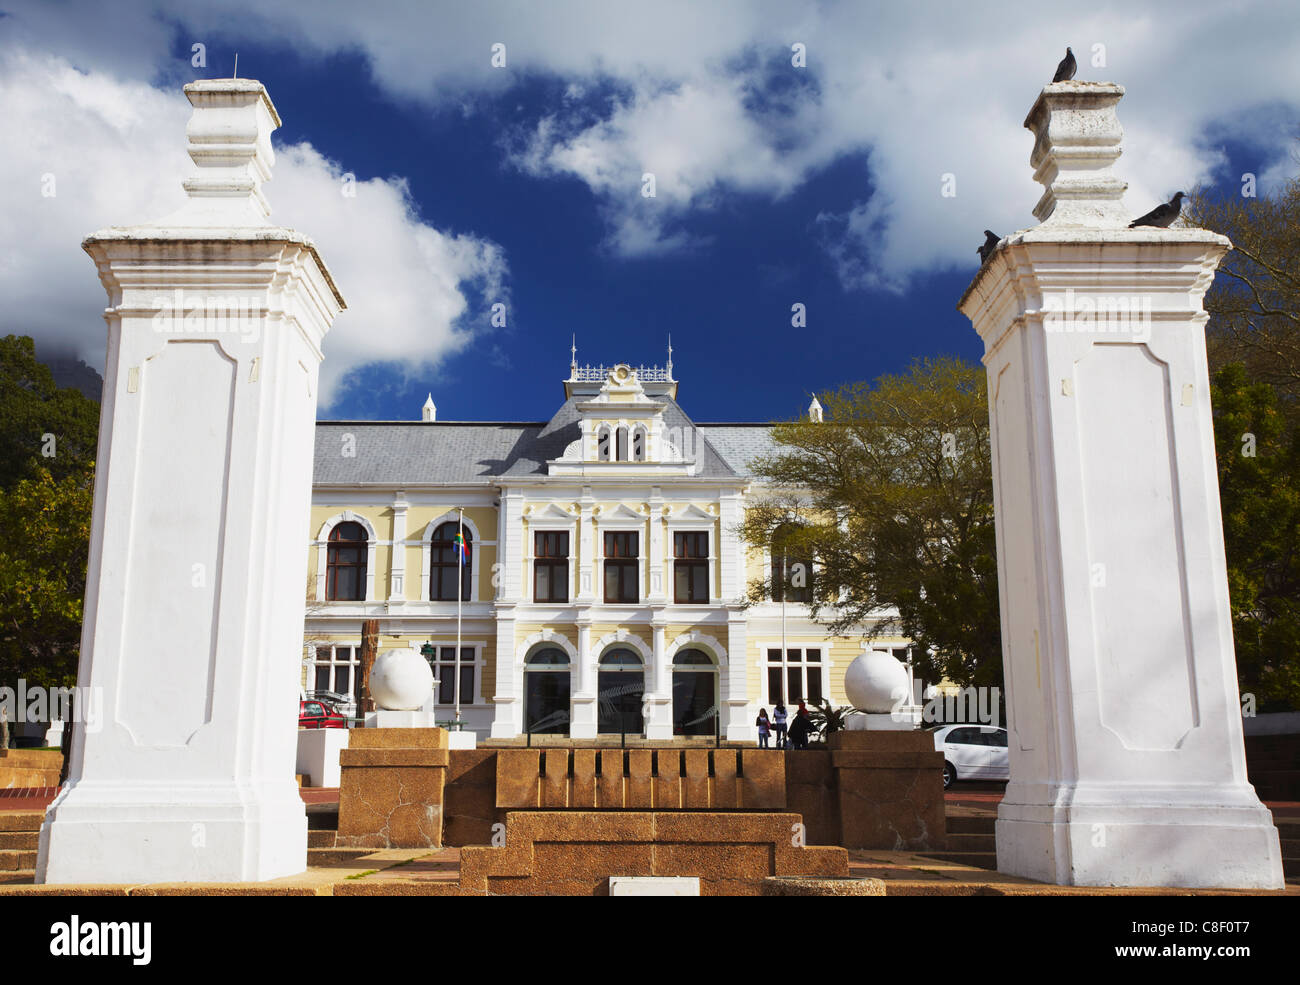 South African Museum, Company's Gardens, City Bowl, Cape Town, Western Cape, South Africa Stock Photo